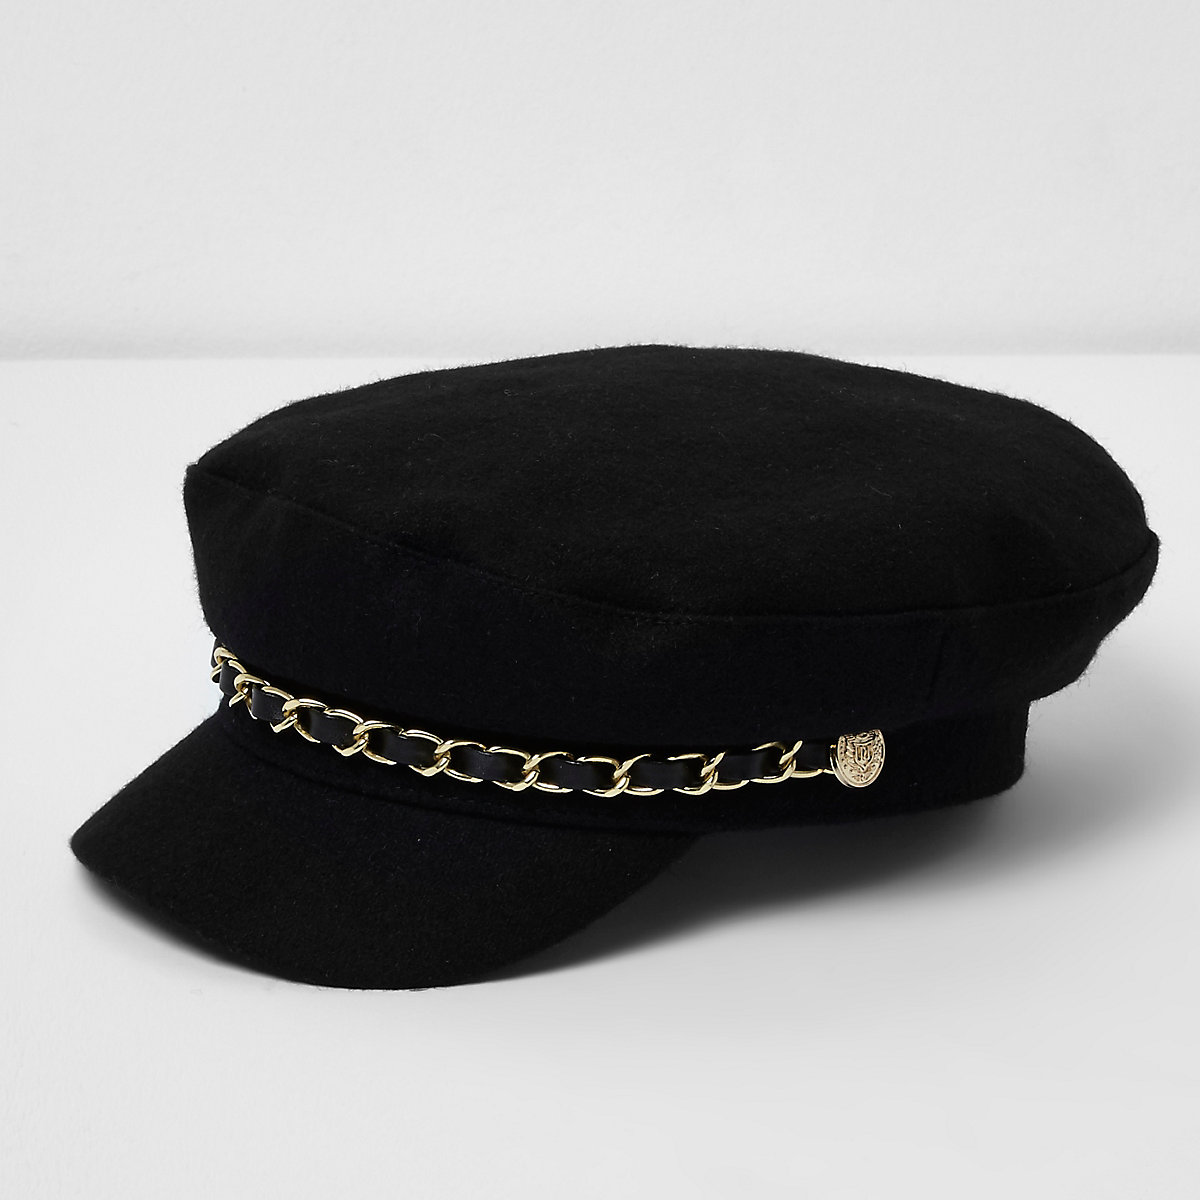 Girls black chain trim baker boy hat - Hats - Accessories - girls bce7bfe29d77